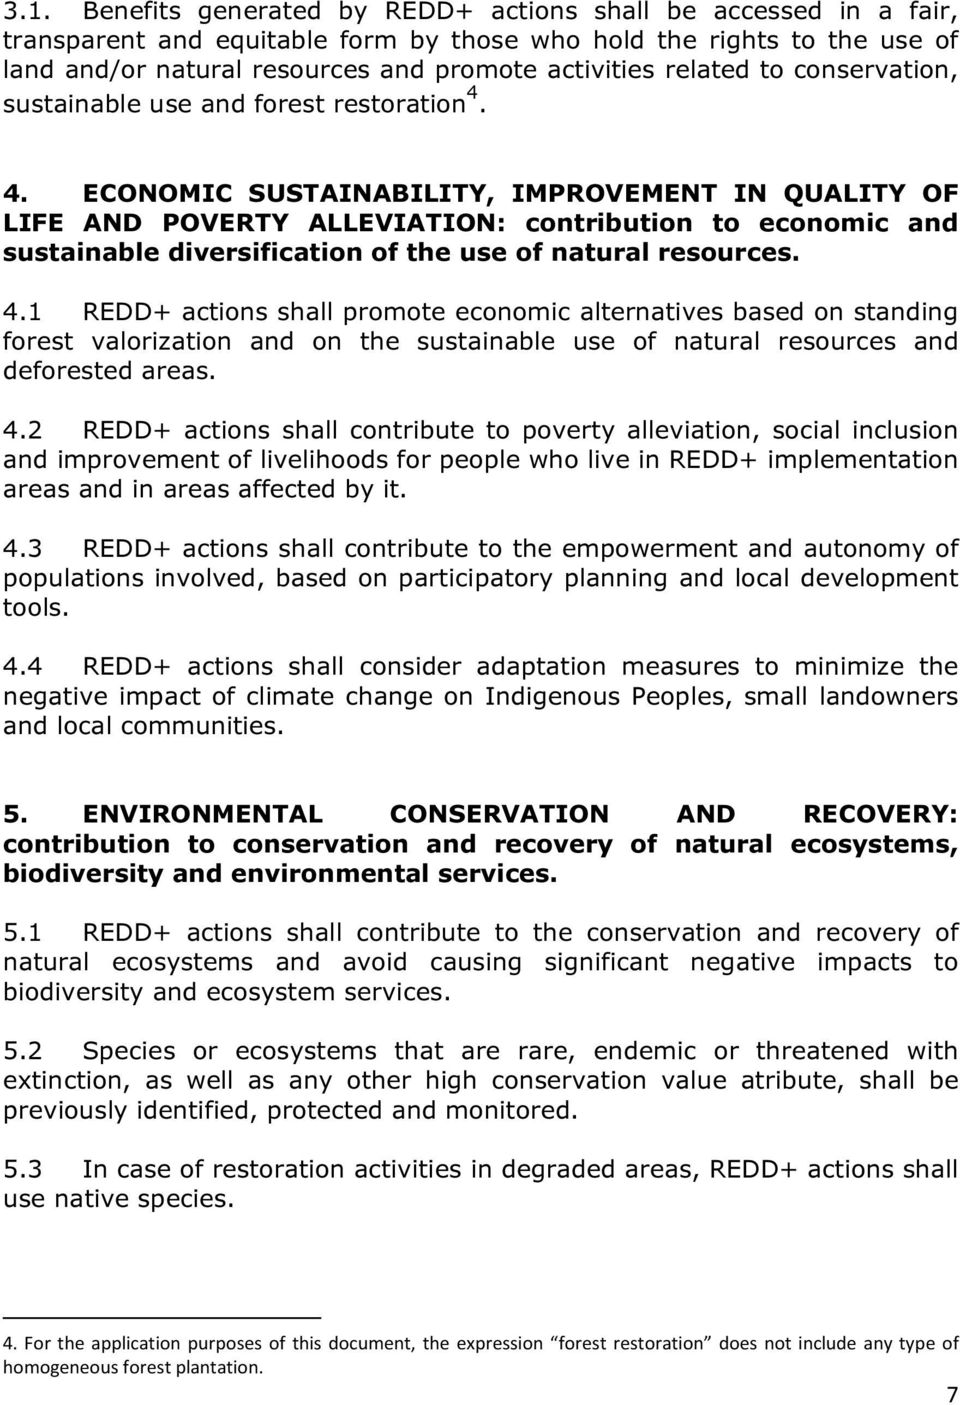 4. ECONOMIC SUSTAINABILITY, IMPROVEMENT IN QUALITY OF LIFE AND POVERTY ALLEVIATION: contribution to economic and sustainable diversification of the use of natural resources. 4.